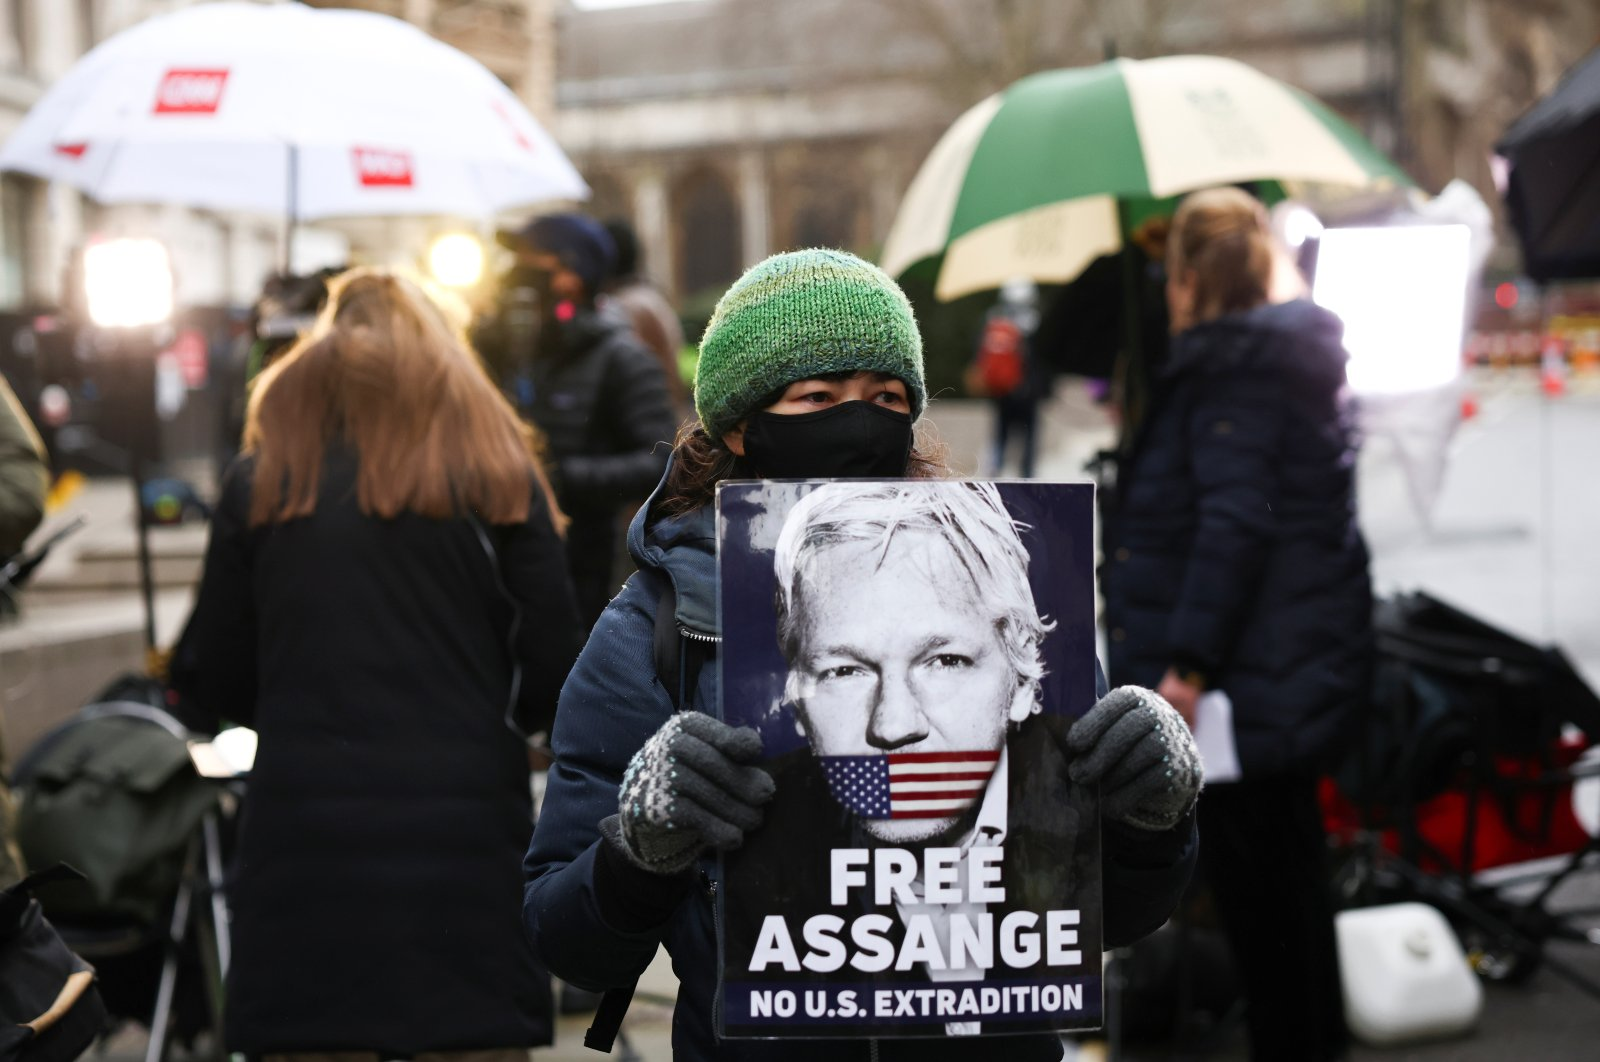 A supporter of WikiLeaks founder Julian Assange holds a placard, at the Old Bailey, the Central Criminal Court, in London, Britain, Jan. 4, 2021. (Reuters Photo)